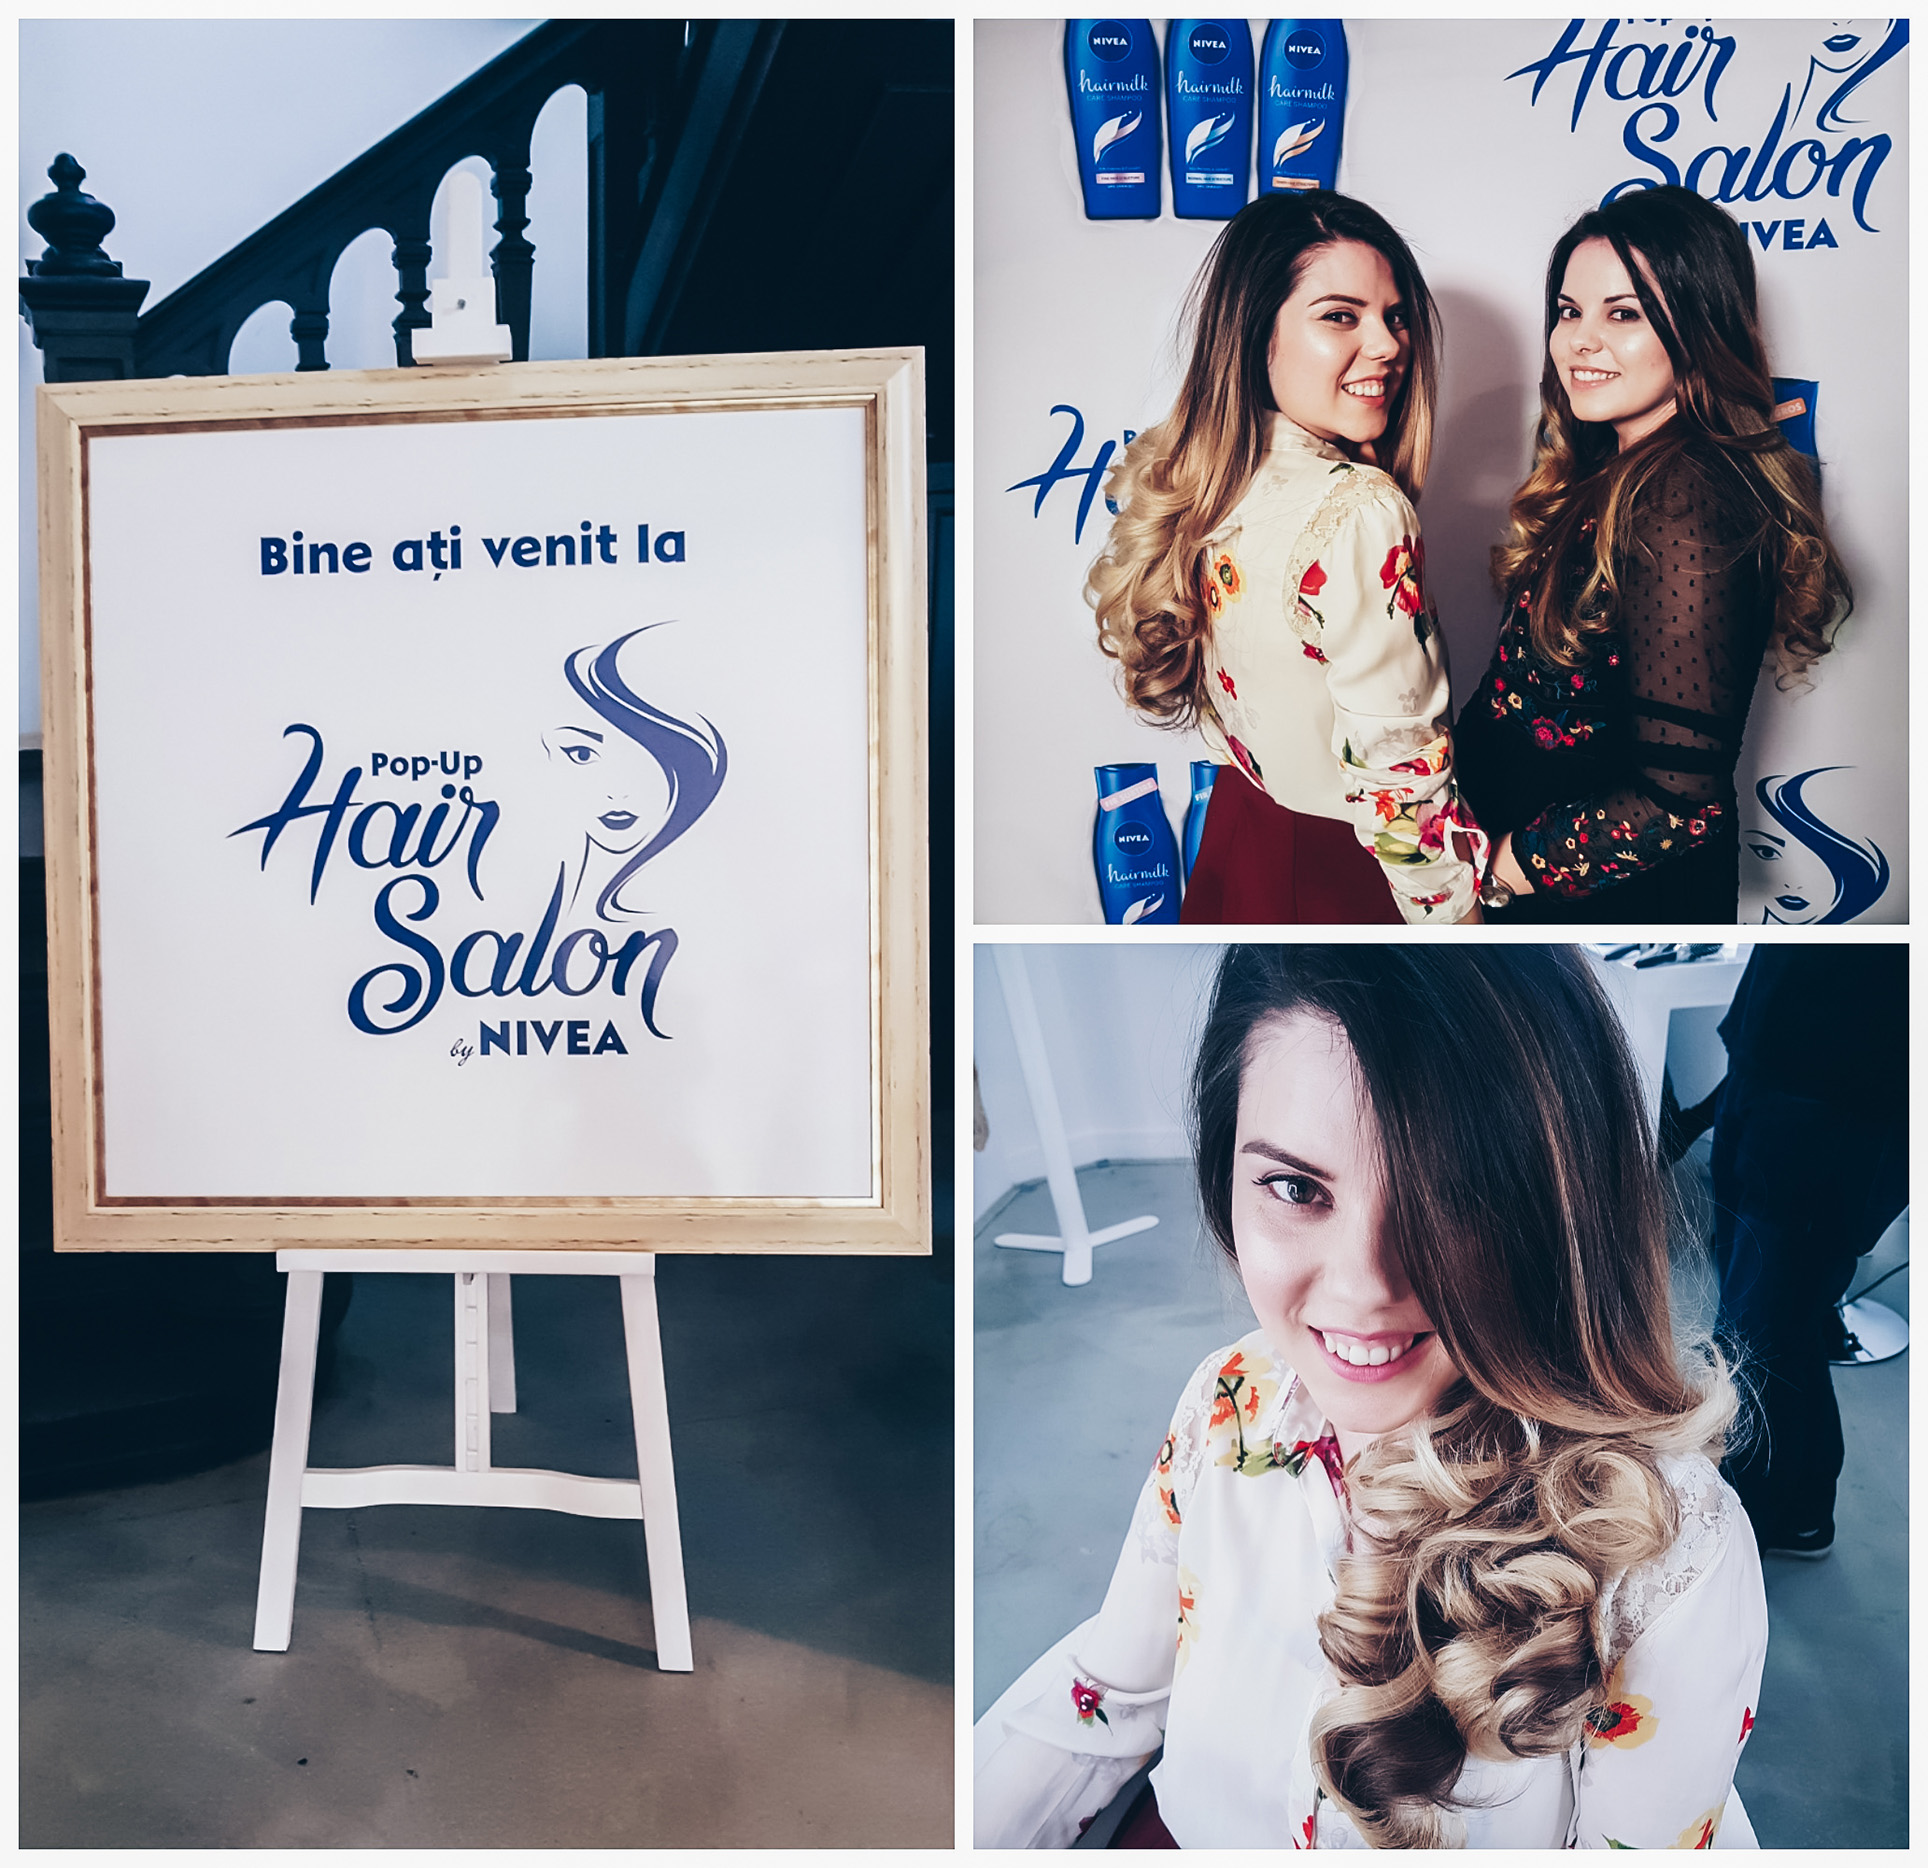 nivea pop up hair salon